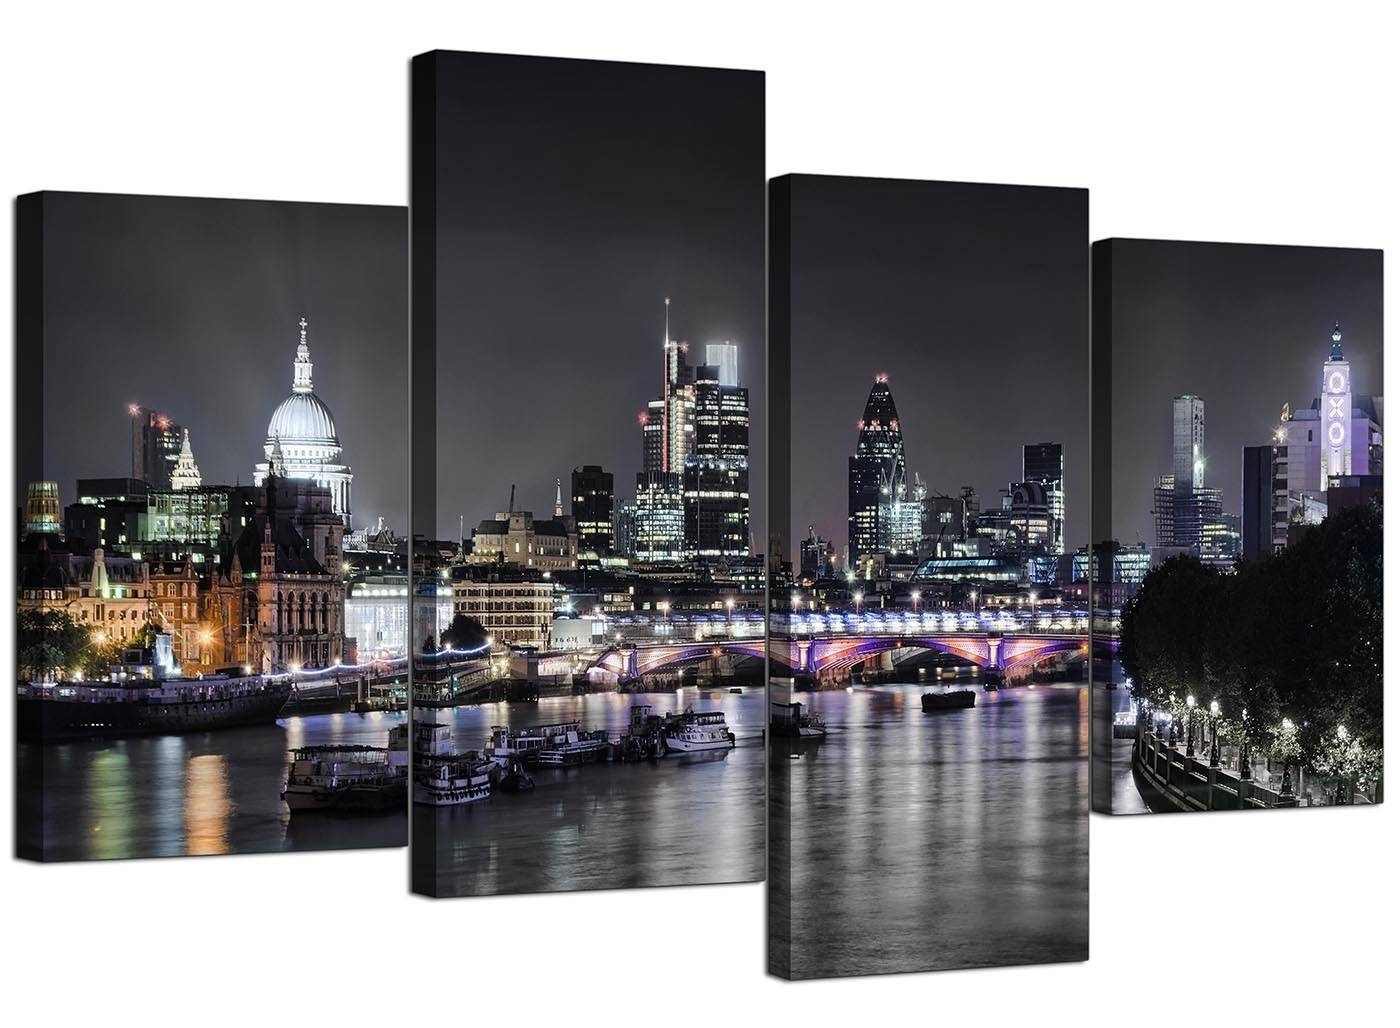 Canvas Wall Art Of London Skyline For Your Living Room – 4 Panel Within Current Cityscape Canvas Wall Art (Gallery 1 of 20)